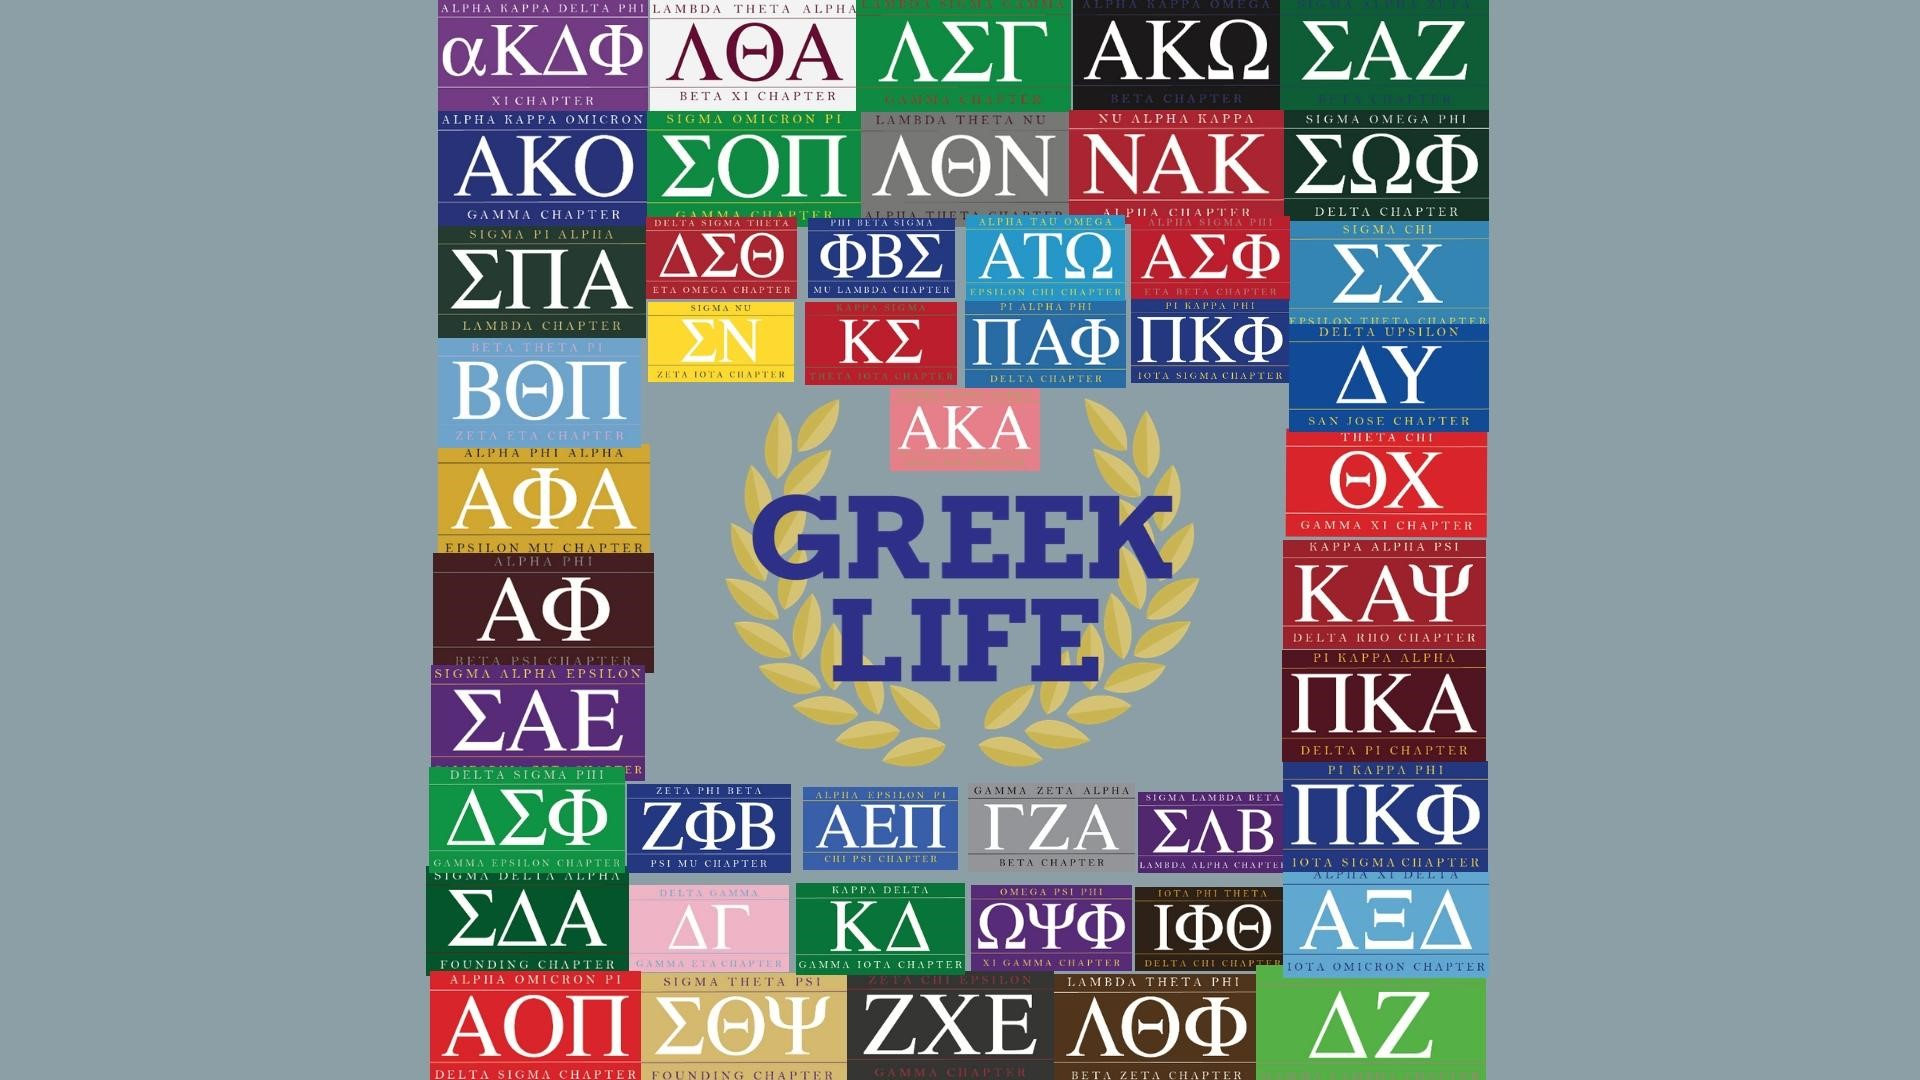 Greek Life graphic with colorful boxes for all fraternity and sorority chapters